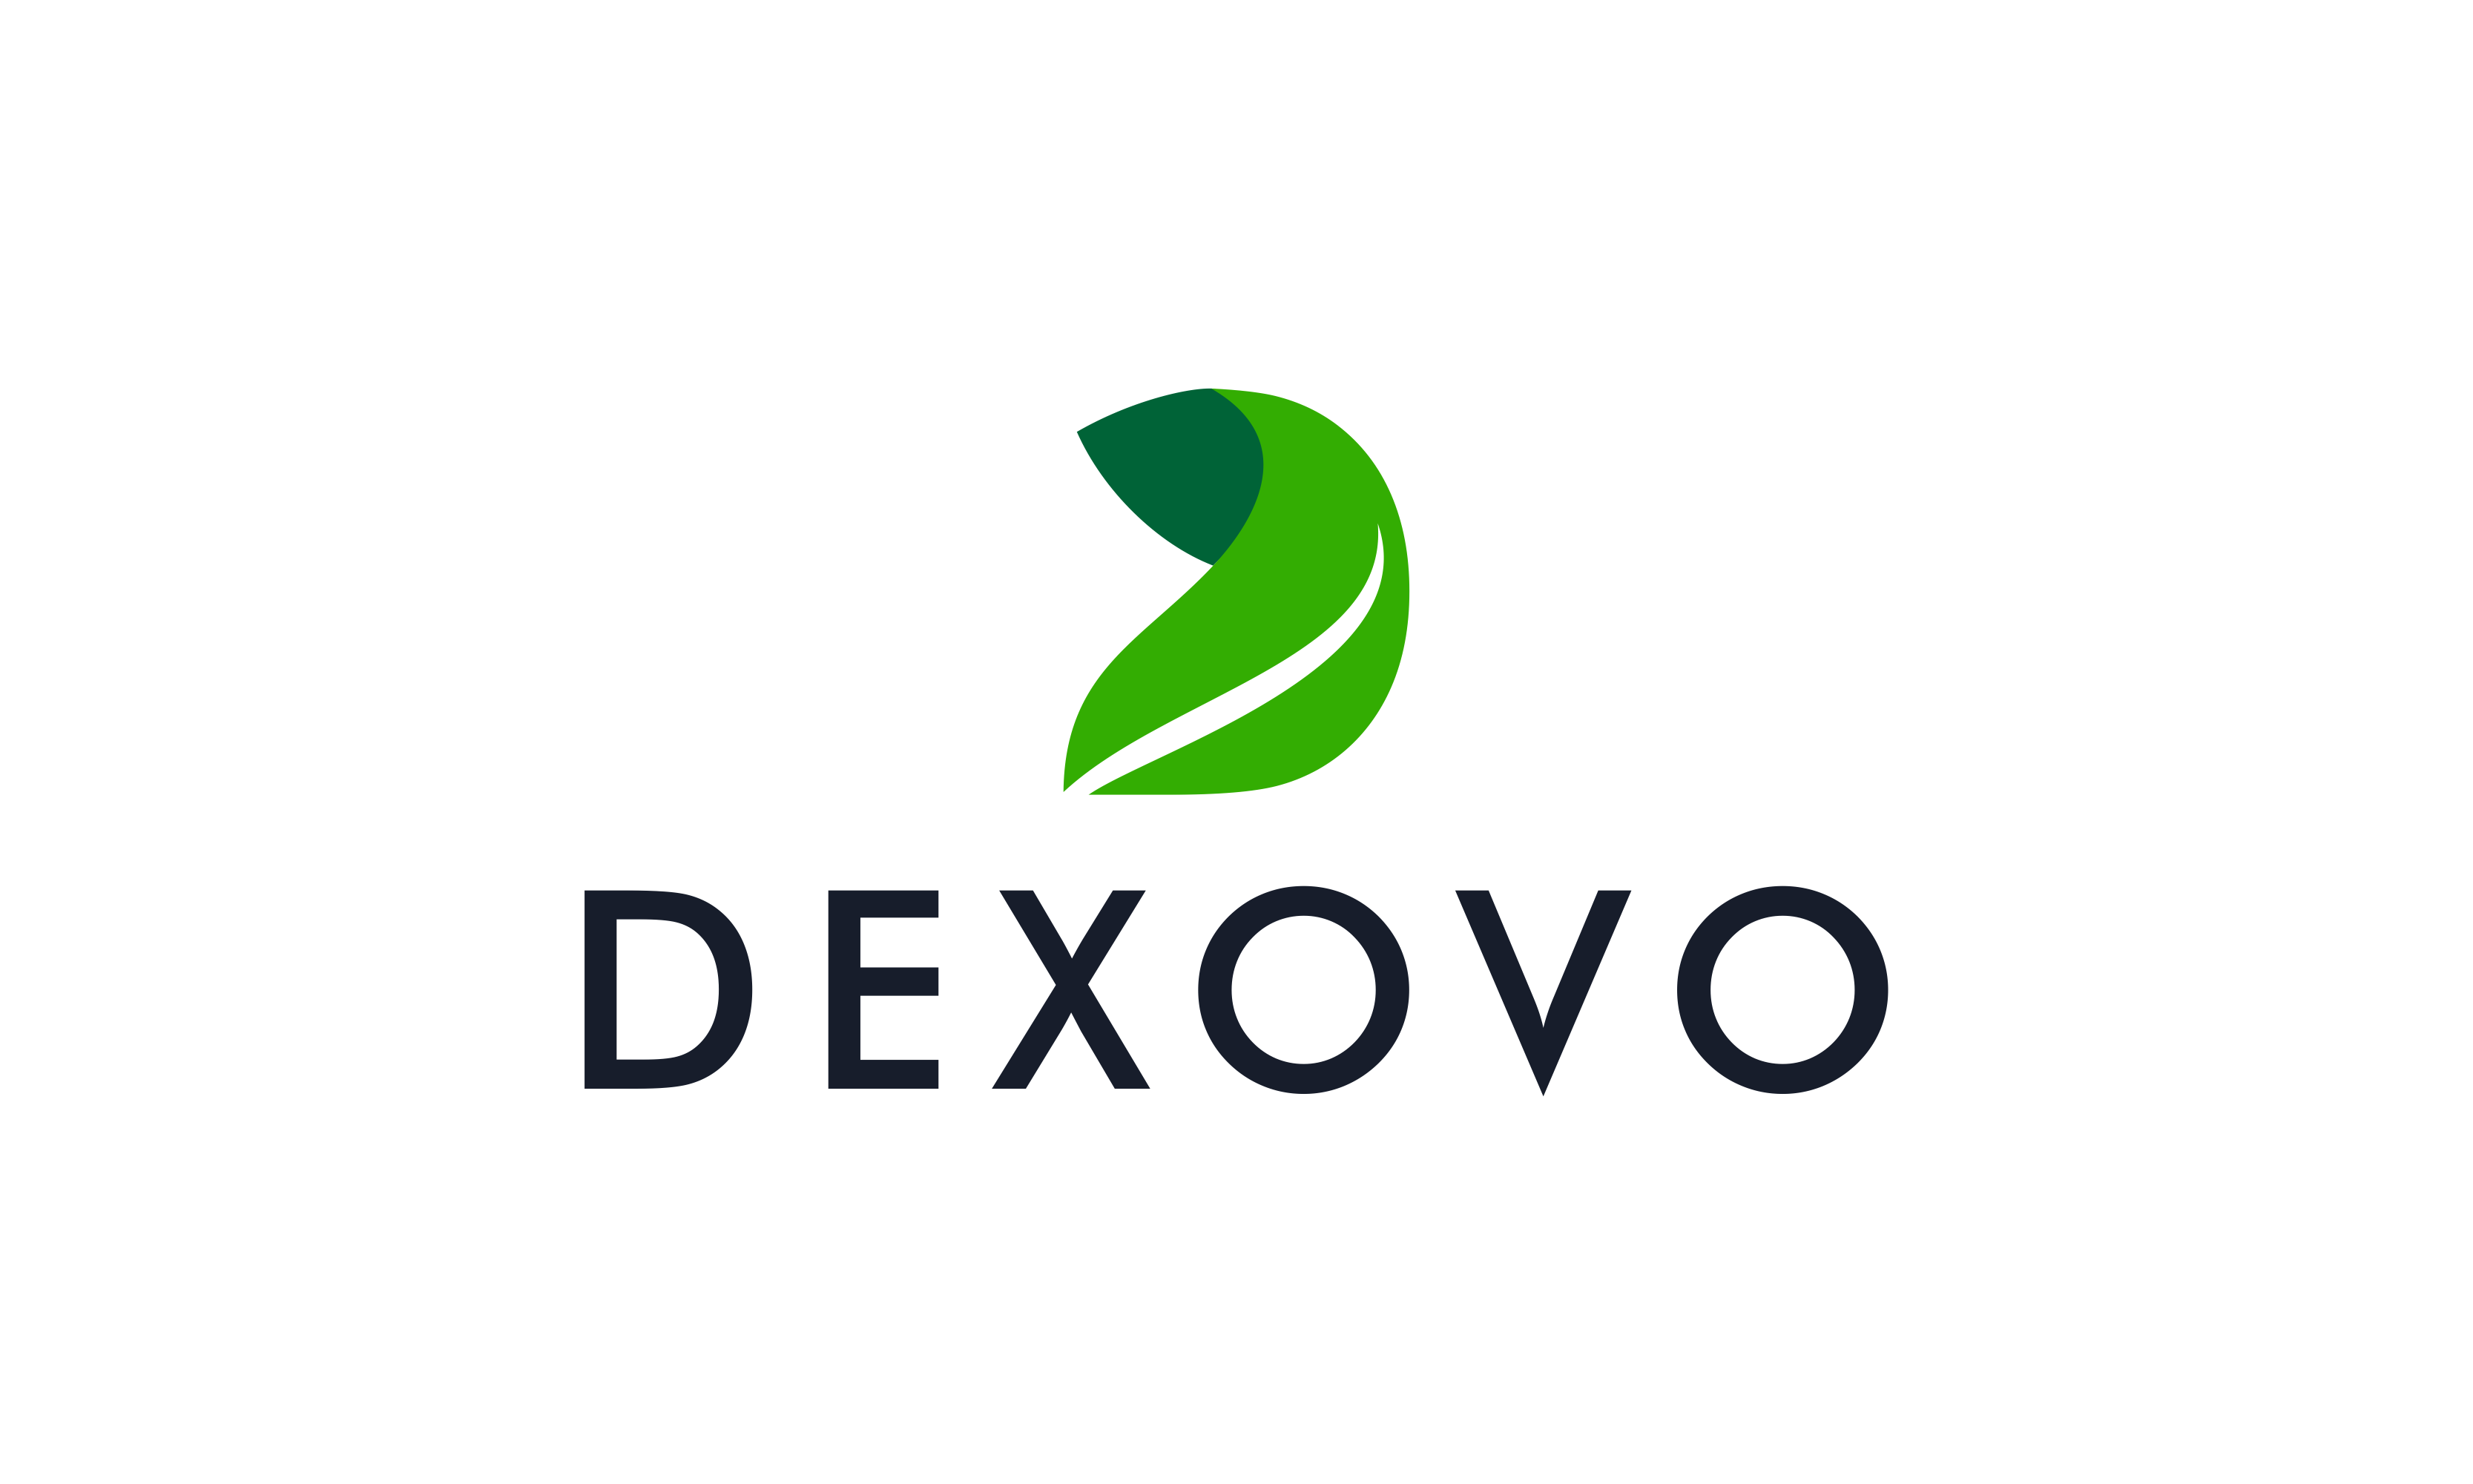 Dexovo - Retail domain name for sale